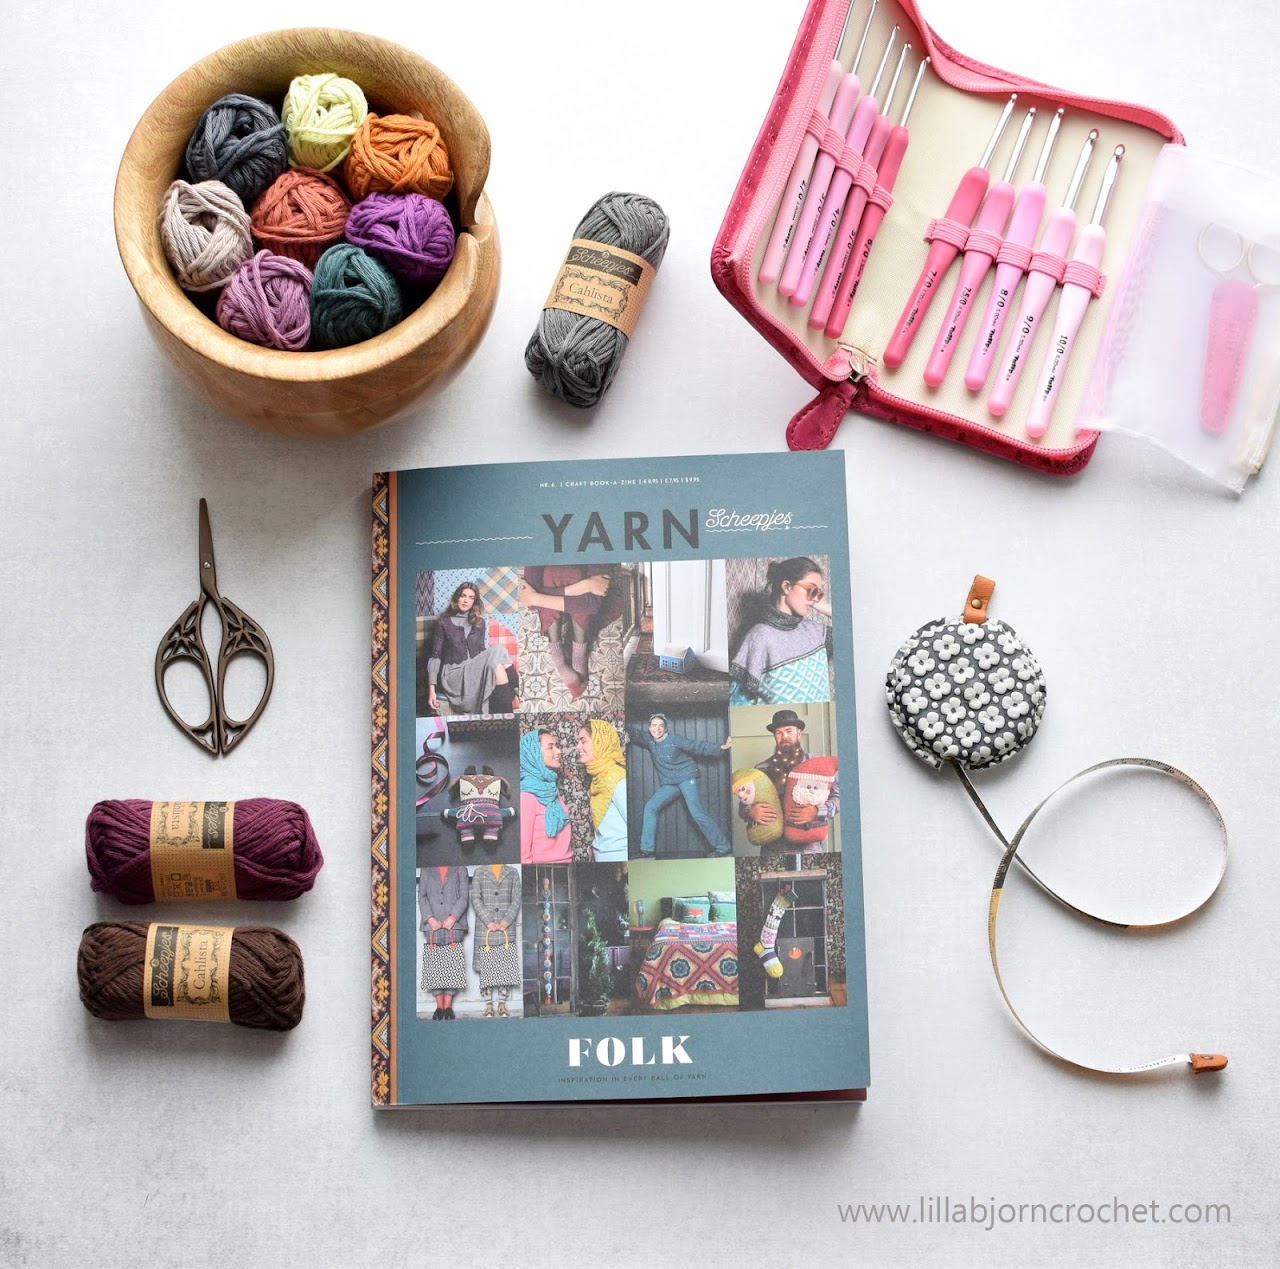 FOLK - YARN 6 book-a-zine by Scheepjes